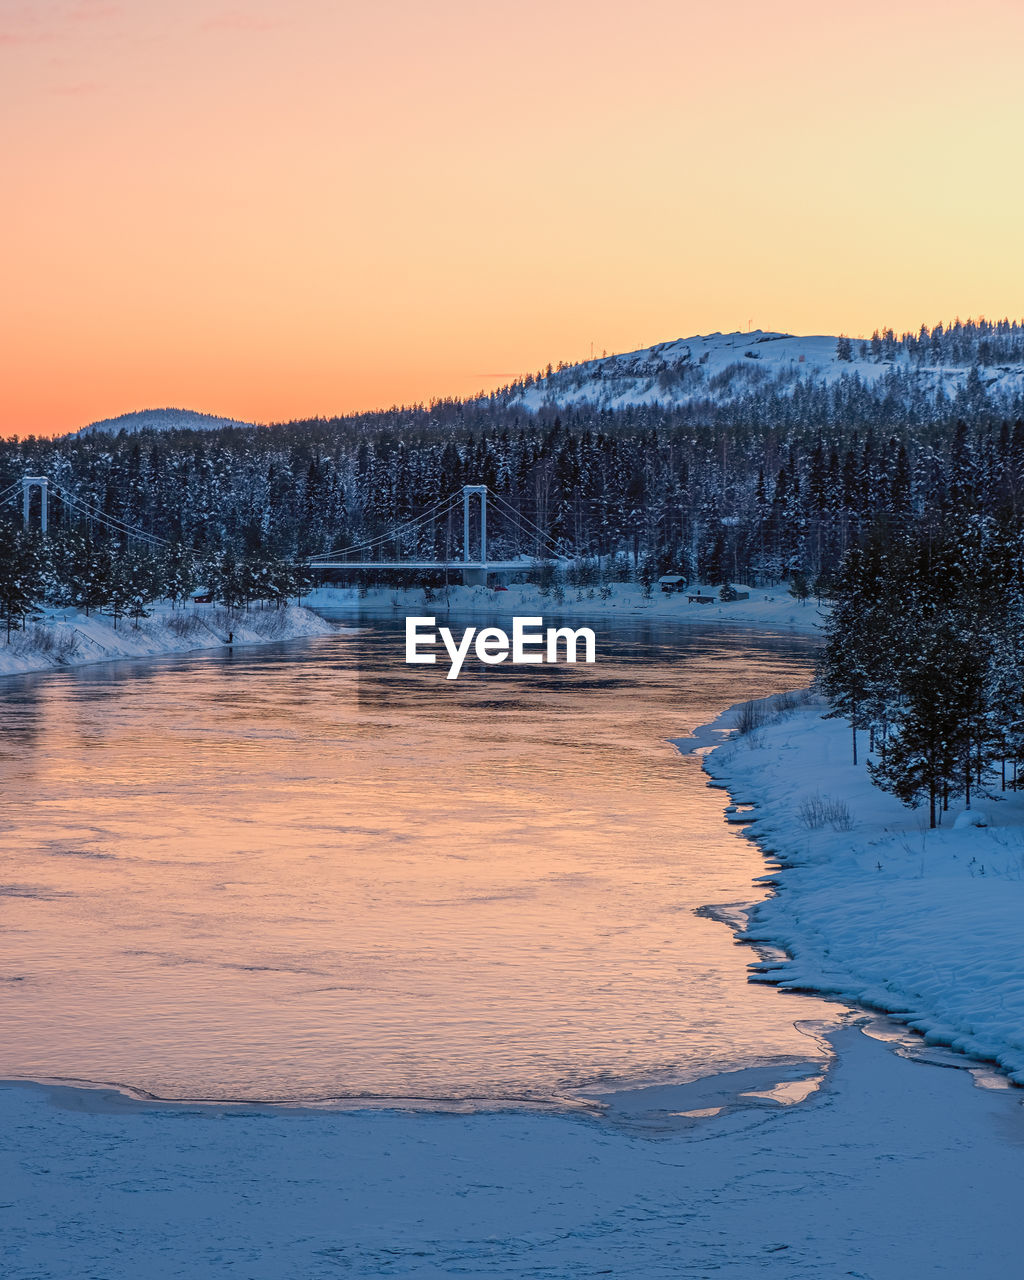 SCENIC VIEW OF FROZEN LAKE AGAINST ORANGE SKY DURING WINTER